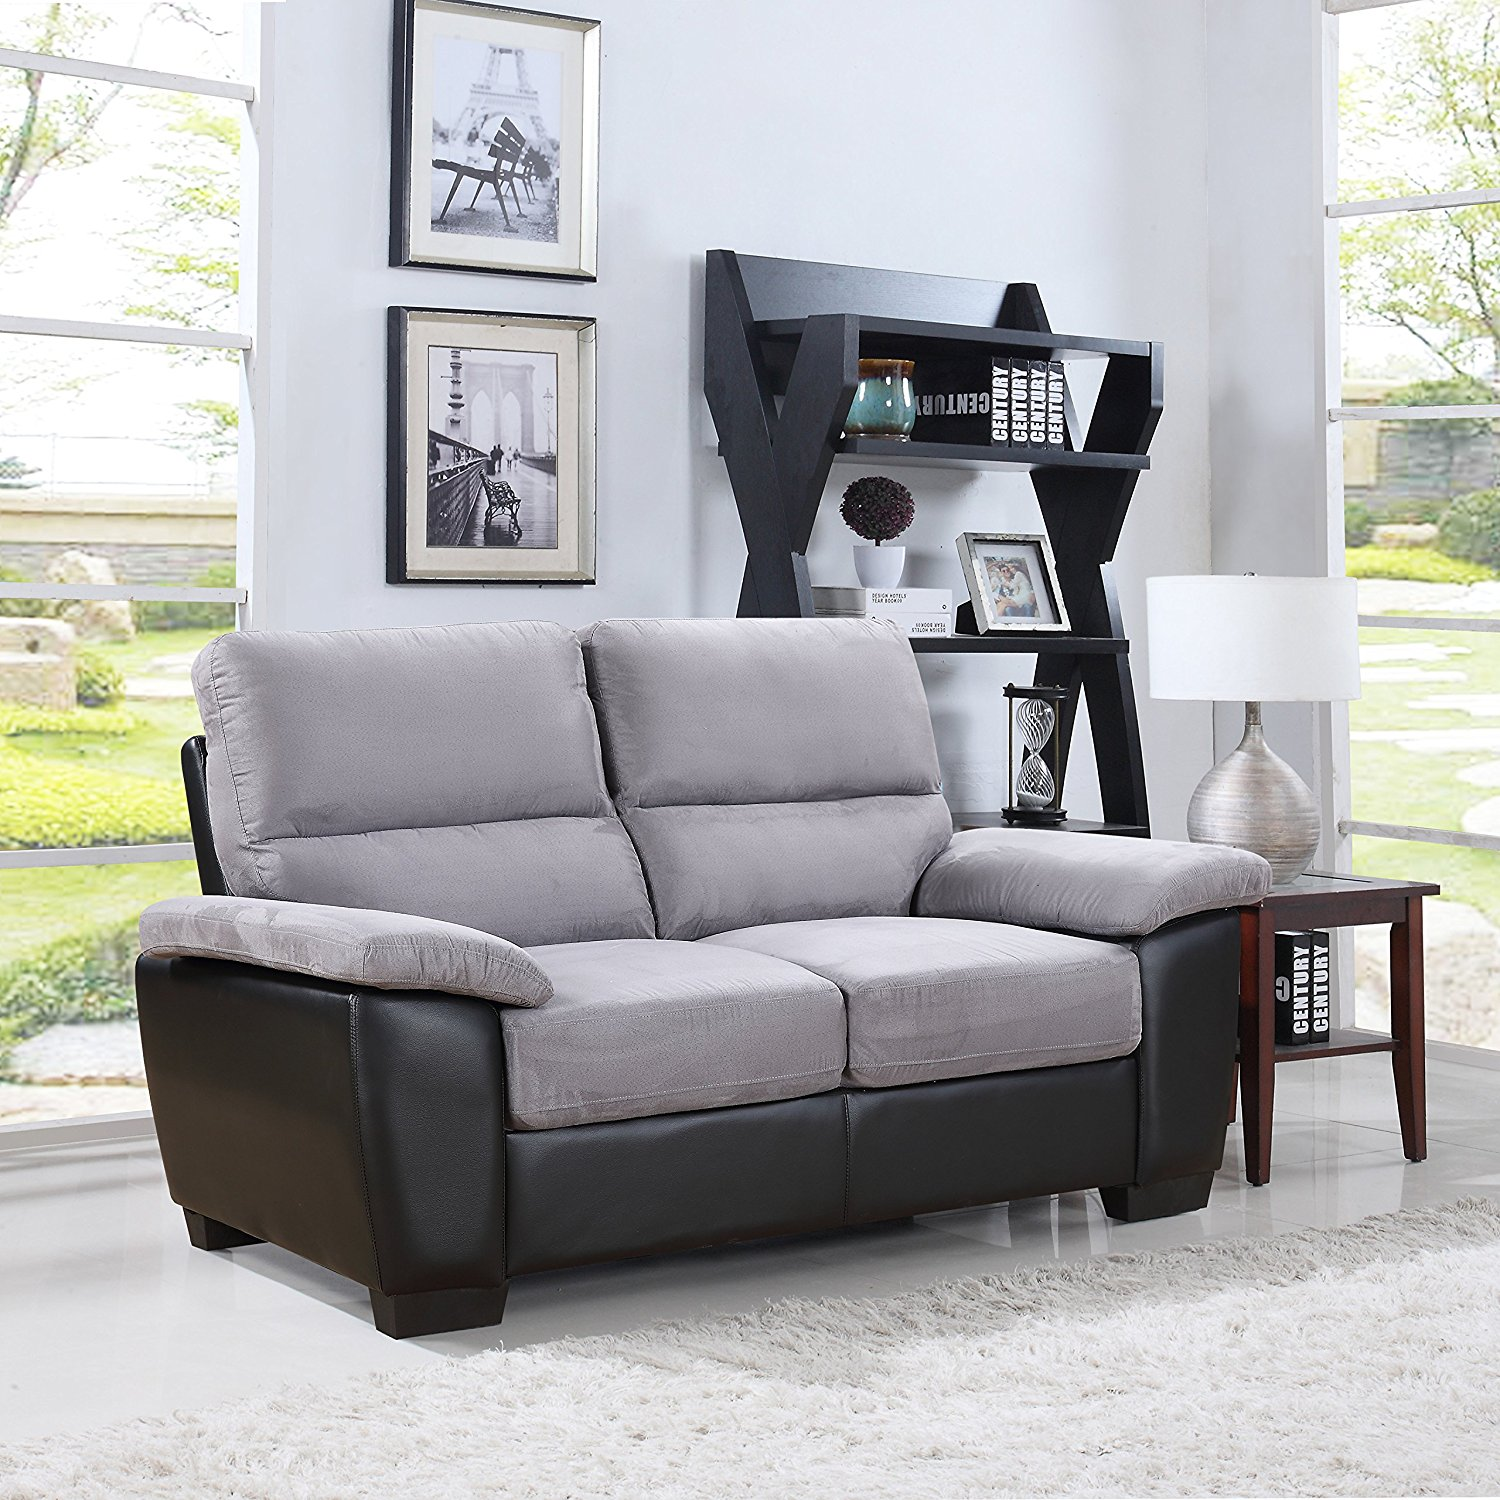 This affordable leather sofa from Divano is an aesthetically pleasing one